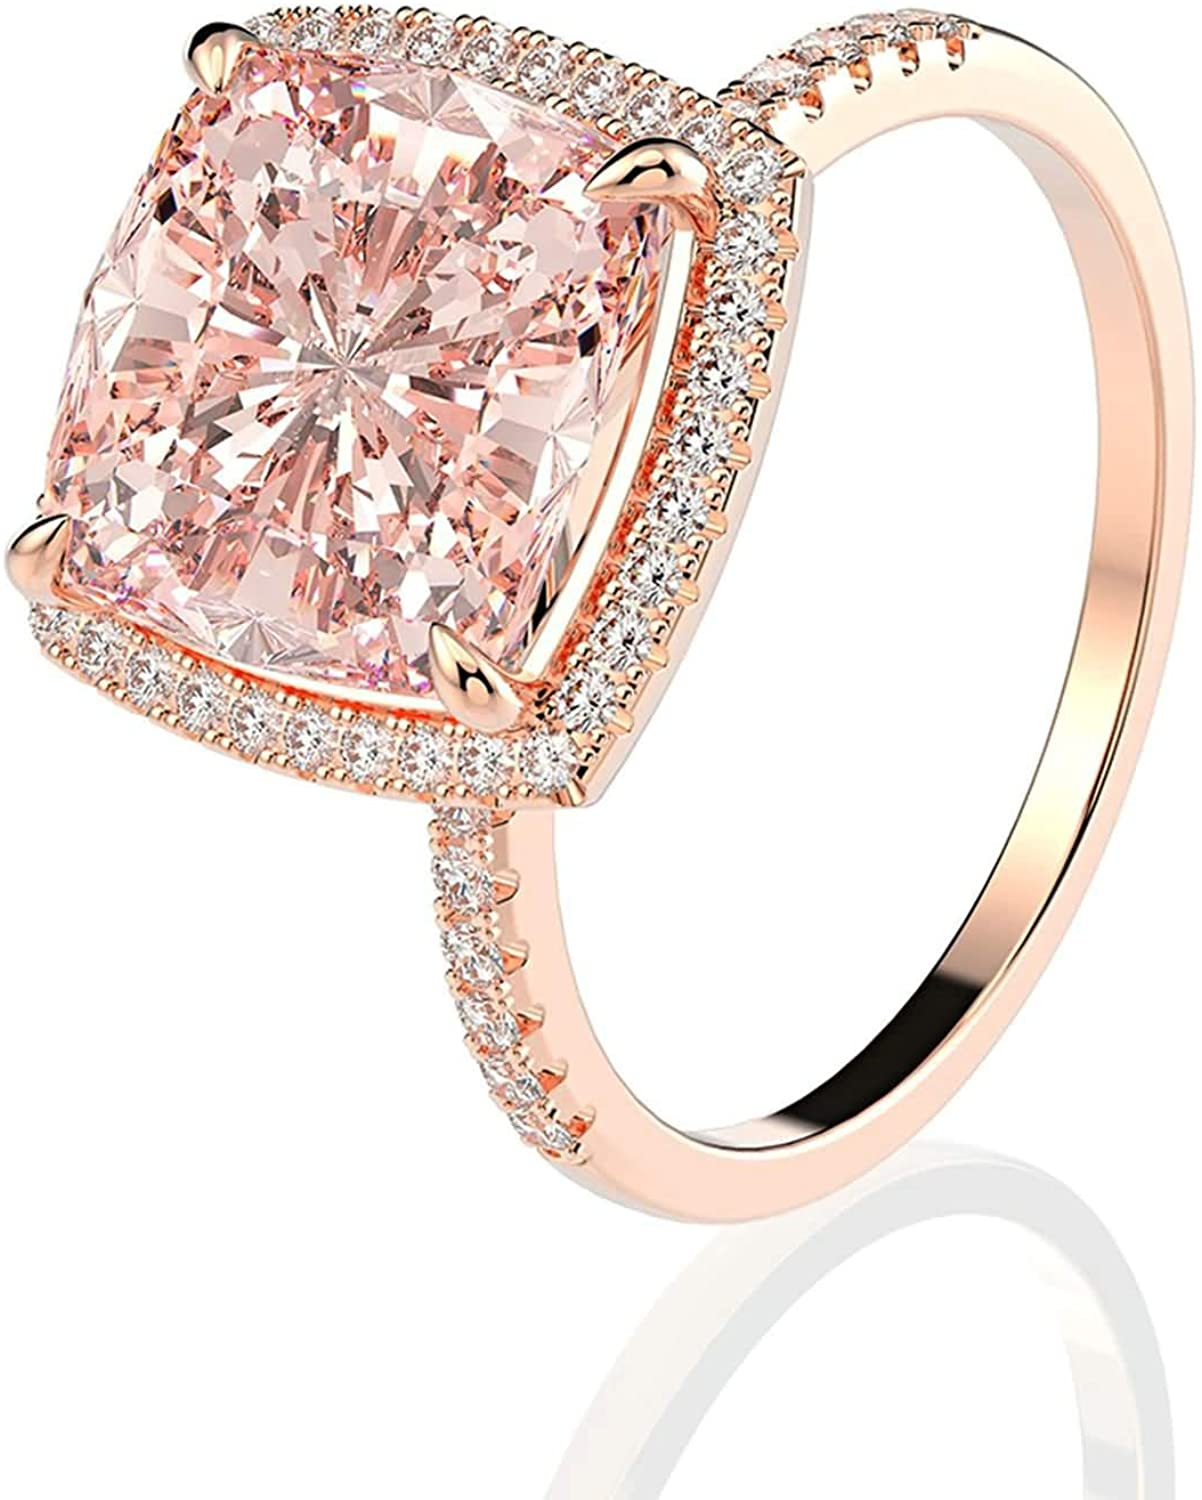 Aeici 925 Engagement Rings Women 4-Prong Cushion Cut Pink Morganite Promise Rings Size 5-9